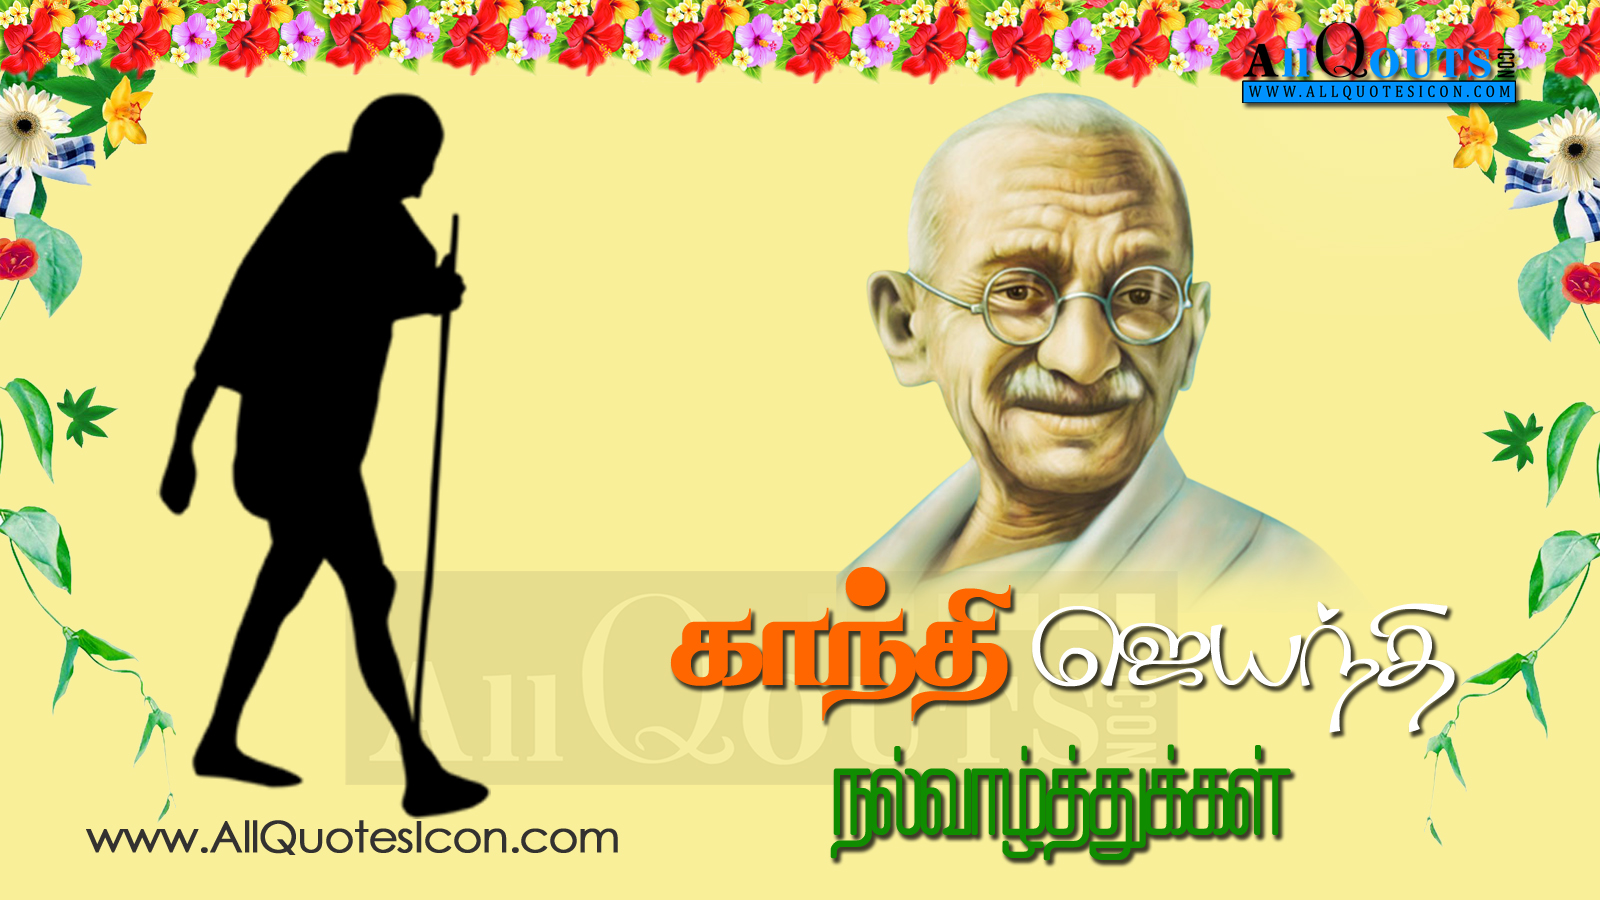 Gandhi Jayanthi Tamil Wishes And Greetings With Beautiful Images